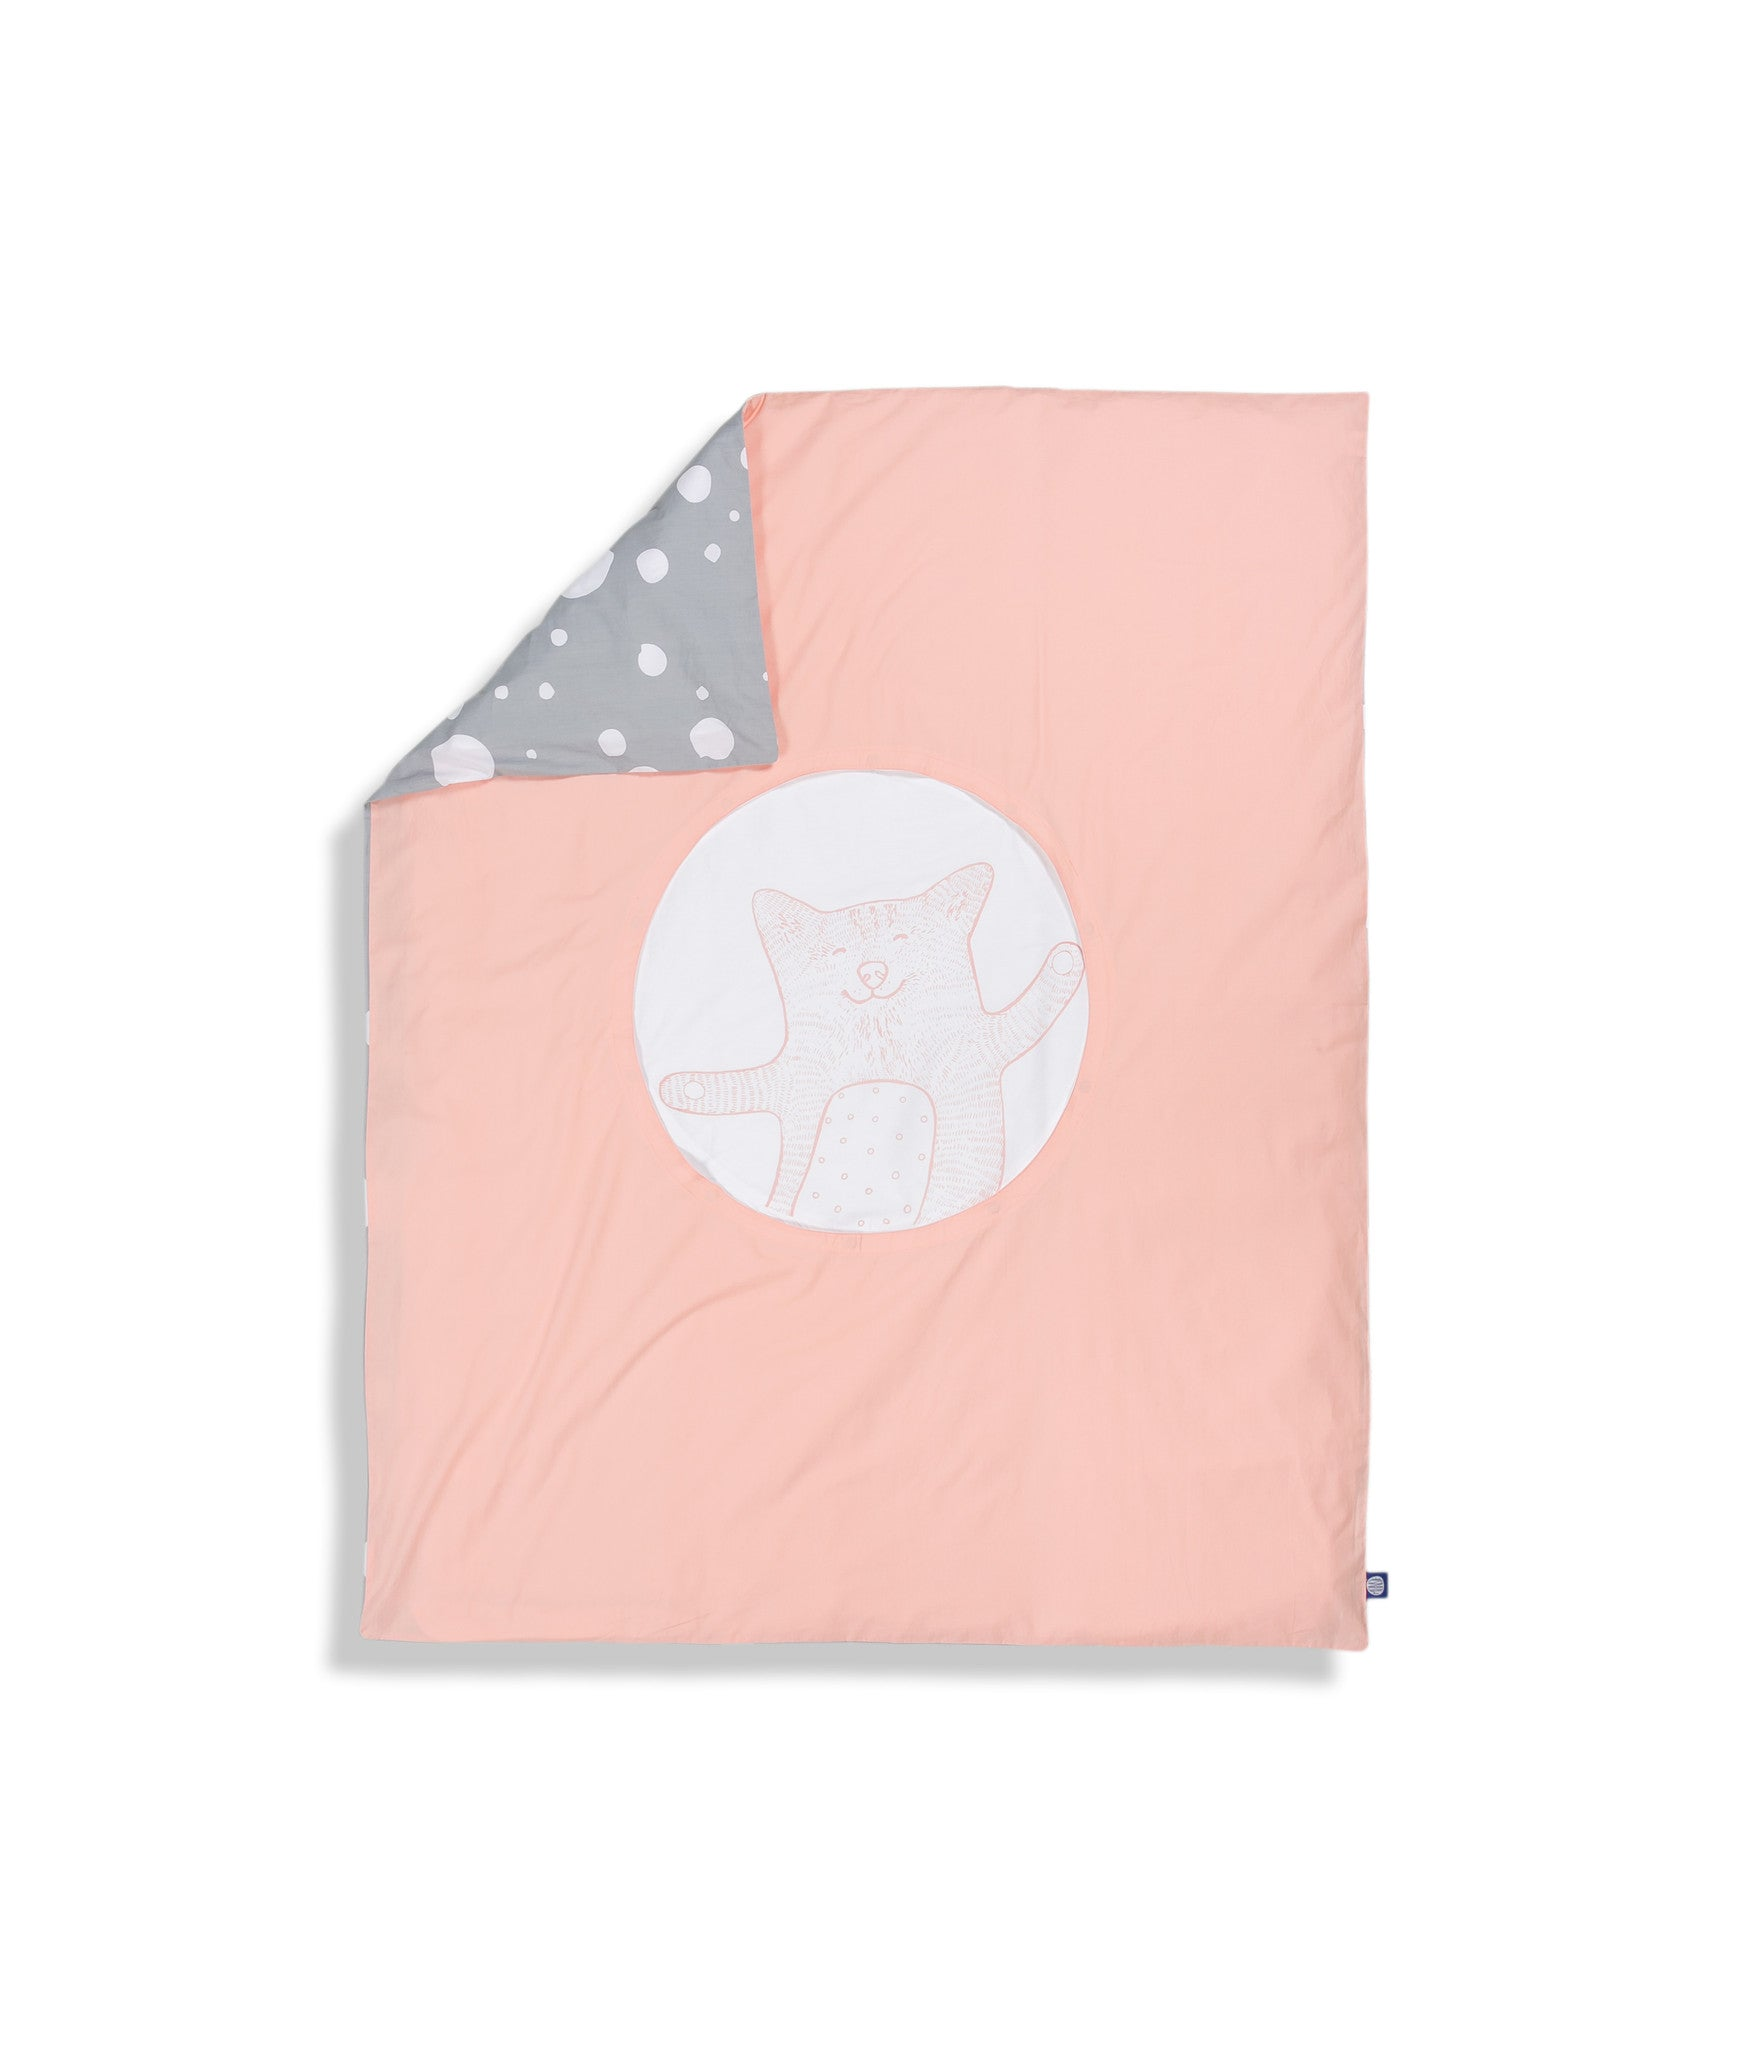 Organic cotton pink cot bed duvet cover. Baby bedding. Pink and grey colours. Dotted pattern bed linen. Innovative design. Main character cat Shoo.